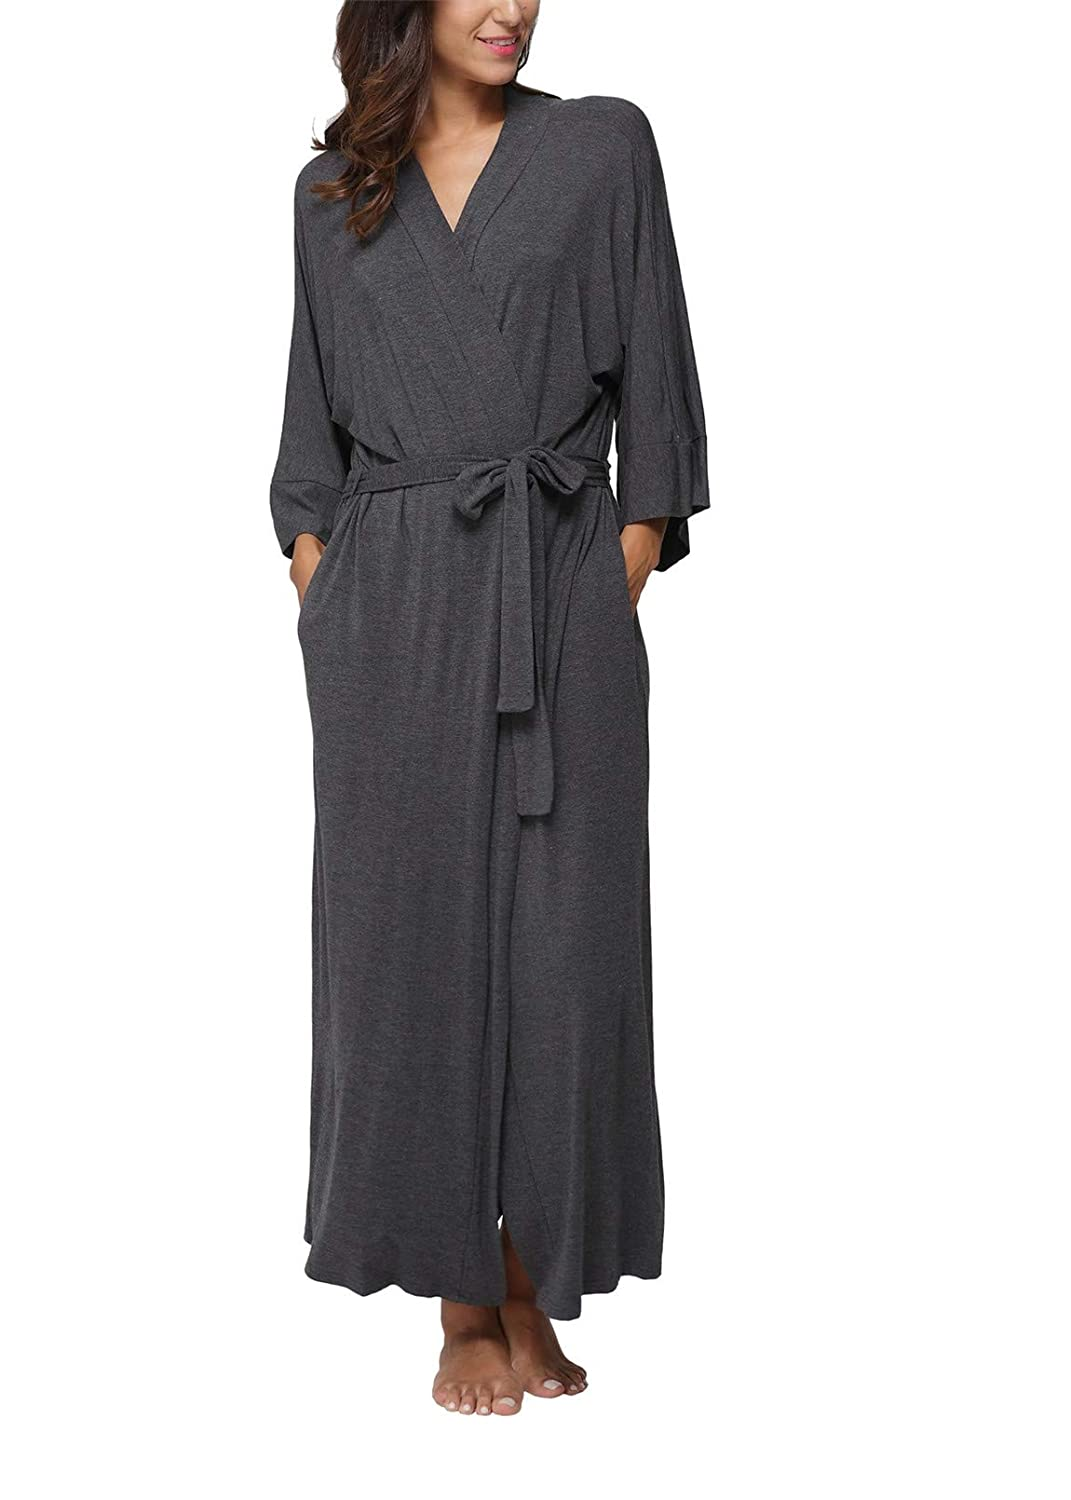 Women's Soft Robes Long Bath Robes Cotton Kimonos Sleepwear Dressing Gown,Solid Color